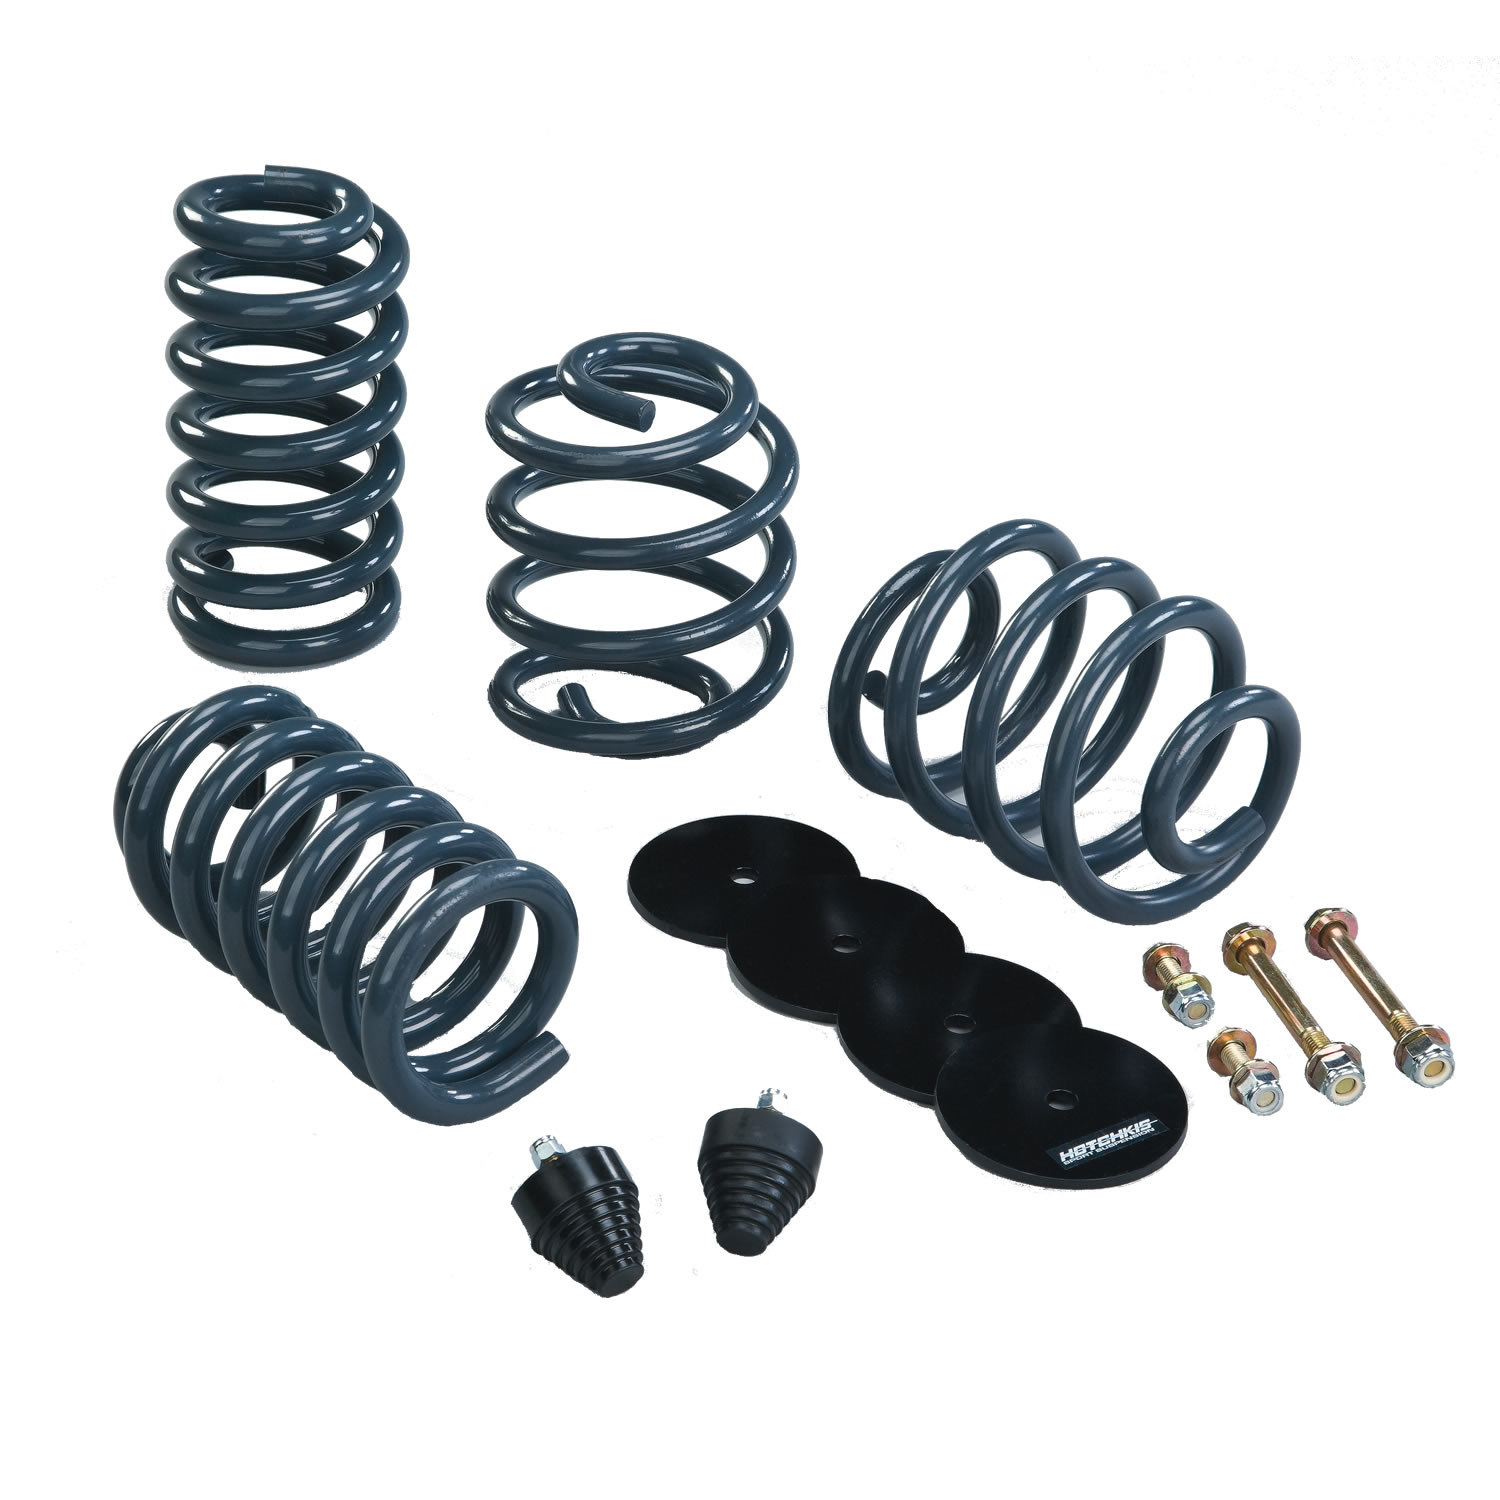 67-72 Chevy C-10 Sport Coil Springs from Hotchkis Sport Suspension